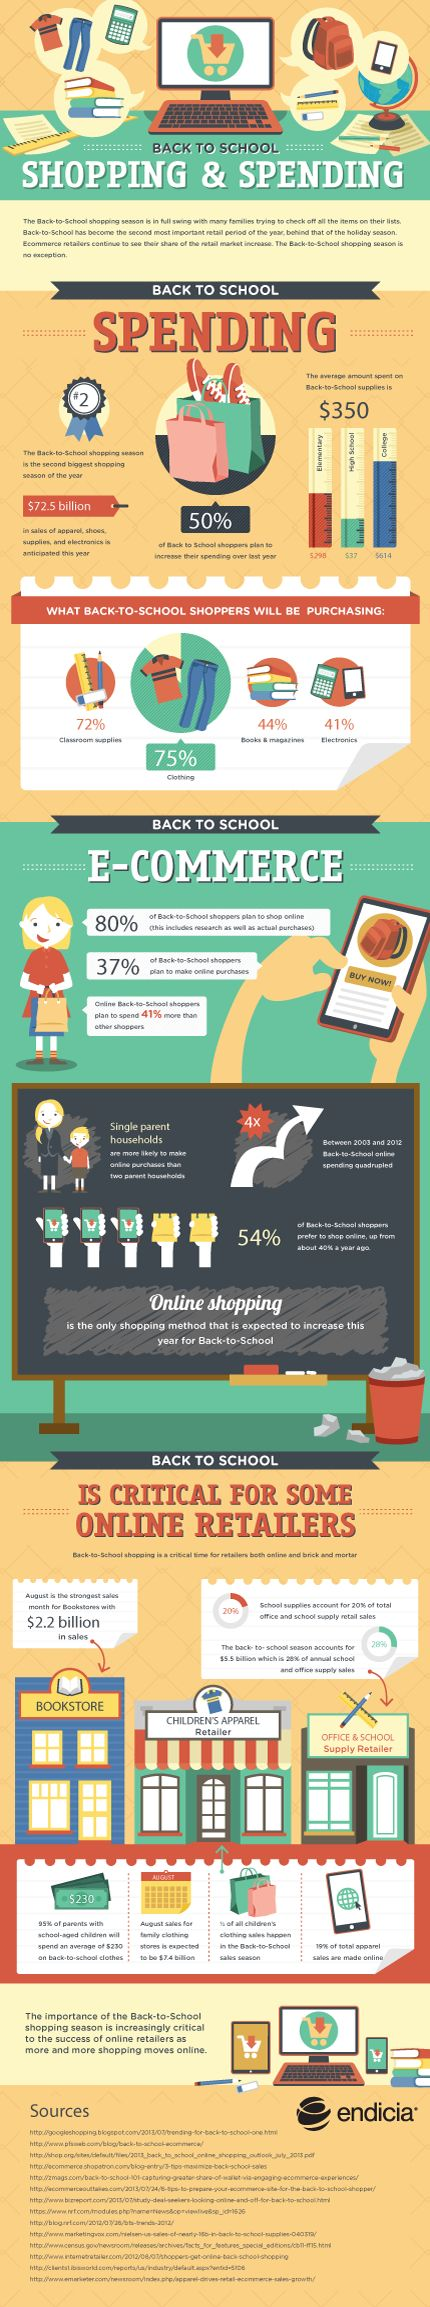 Back-to-School Online Spending and Ecommerce Trend [Infographic]